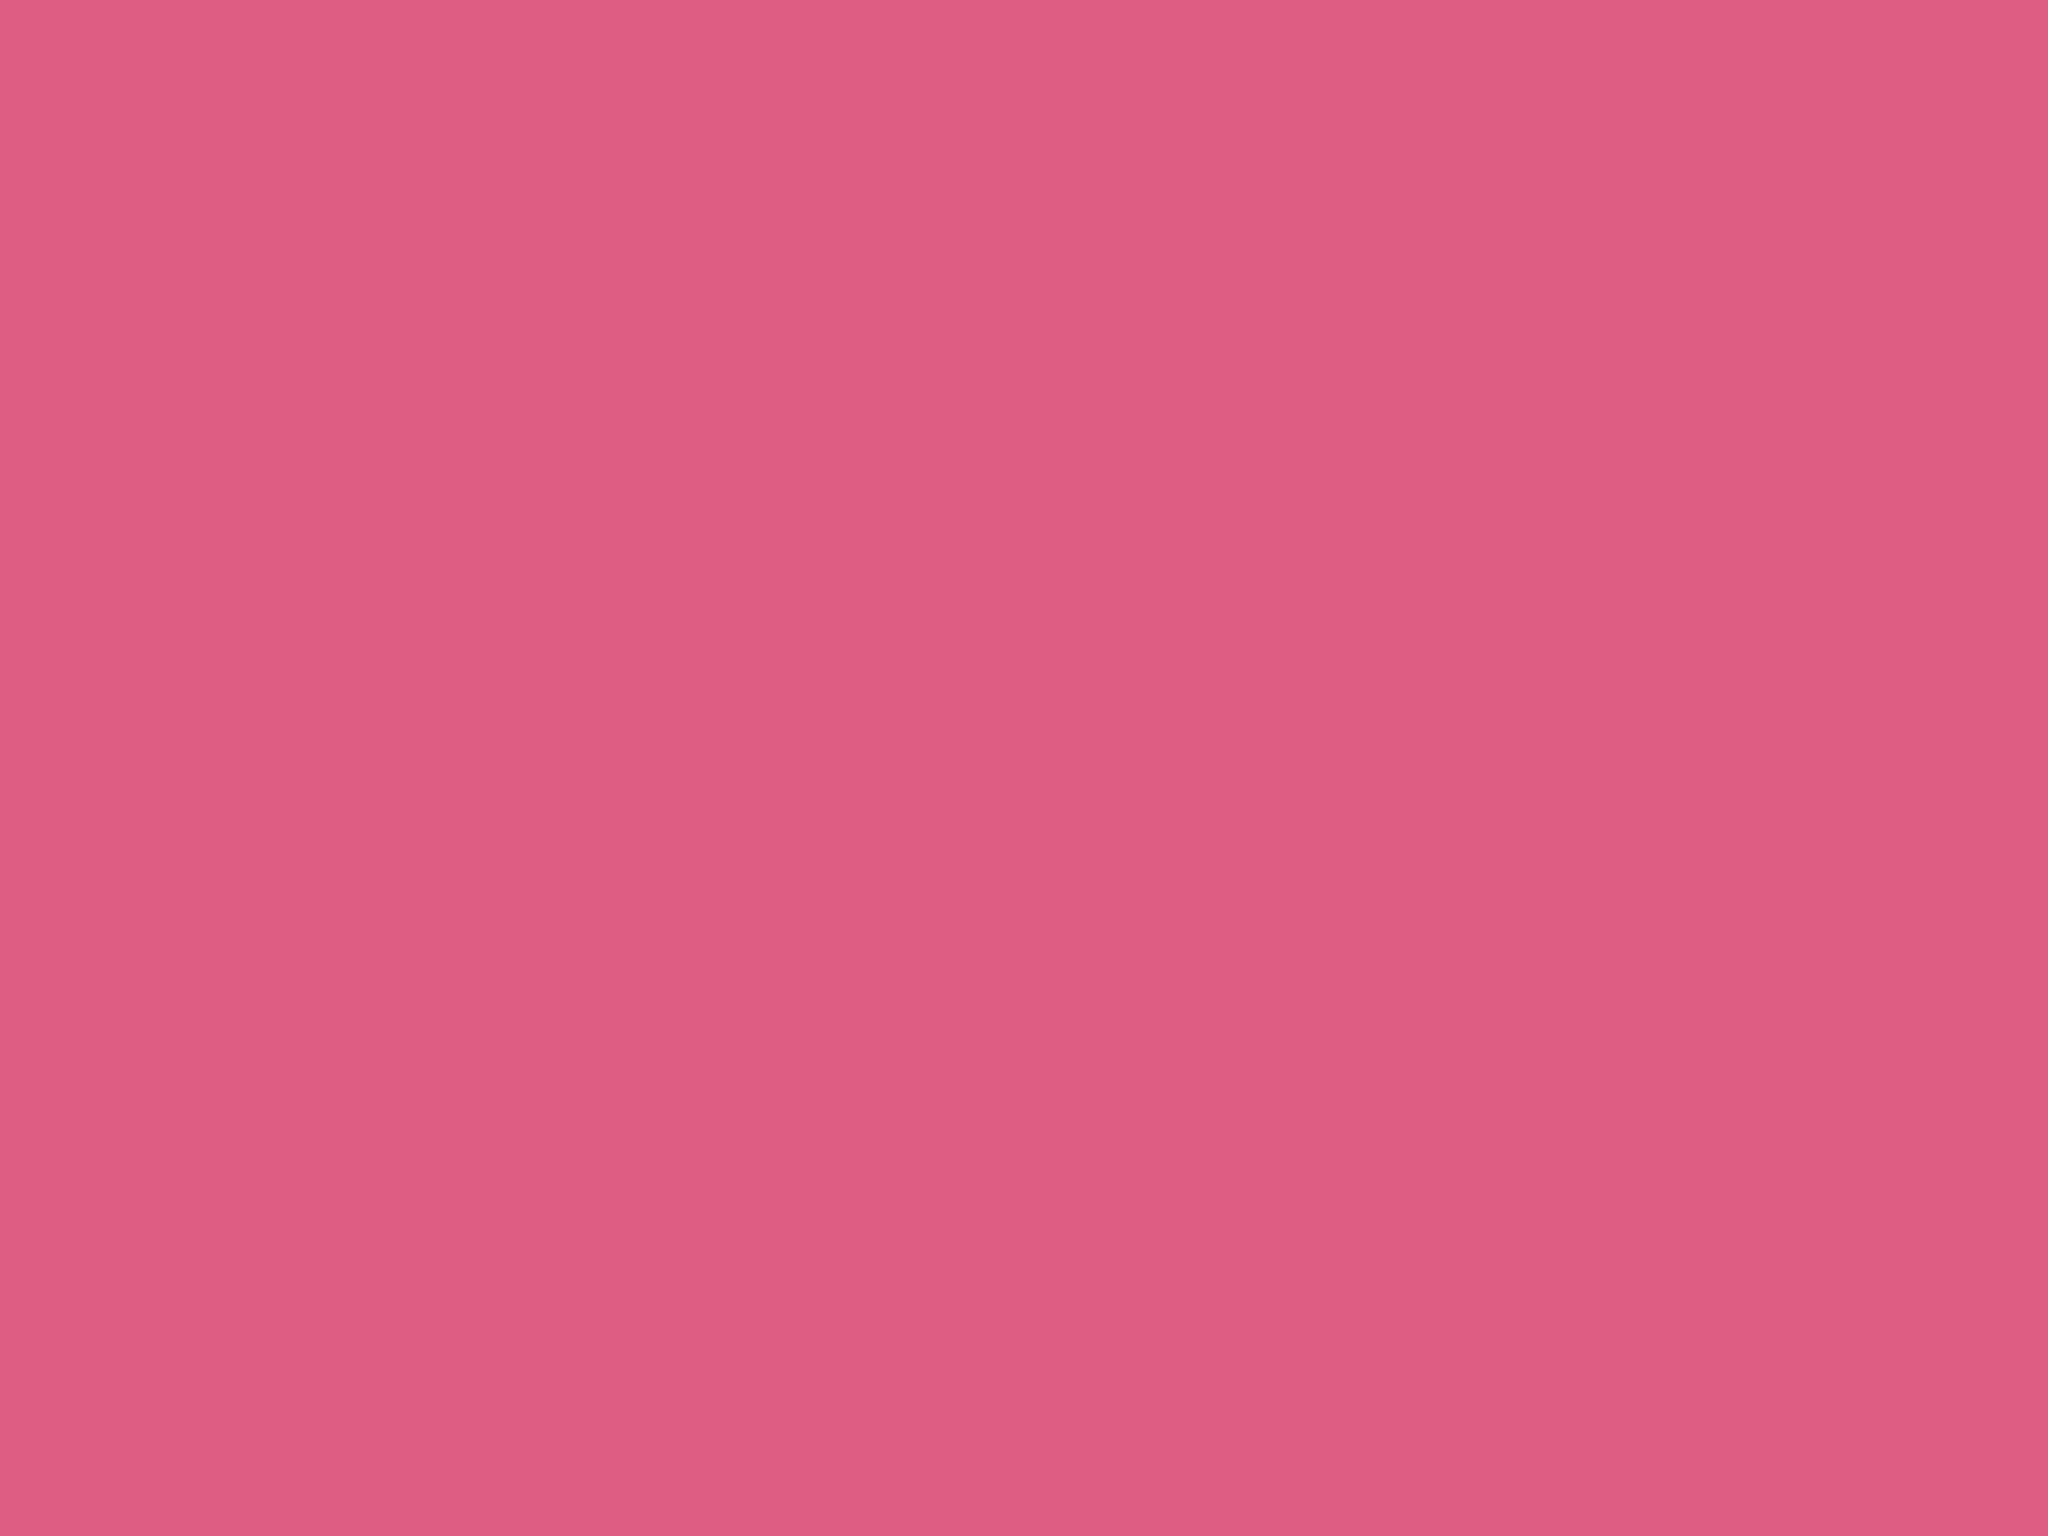 2048x1536 Blush Solid Color Background